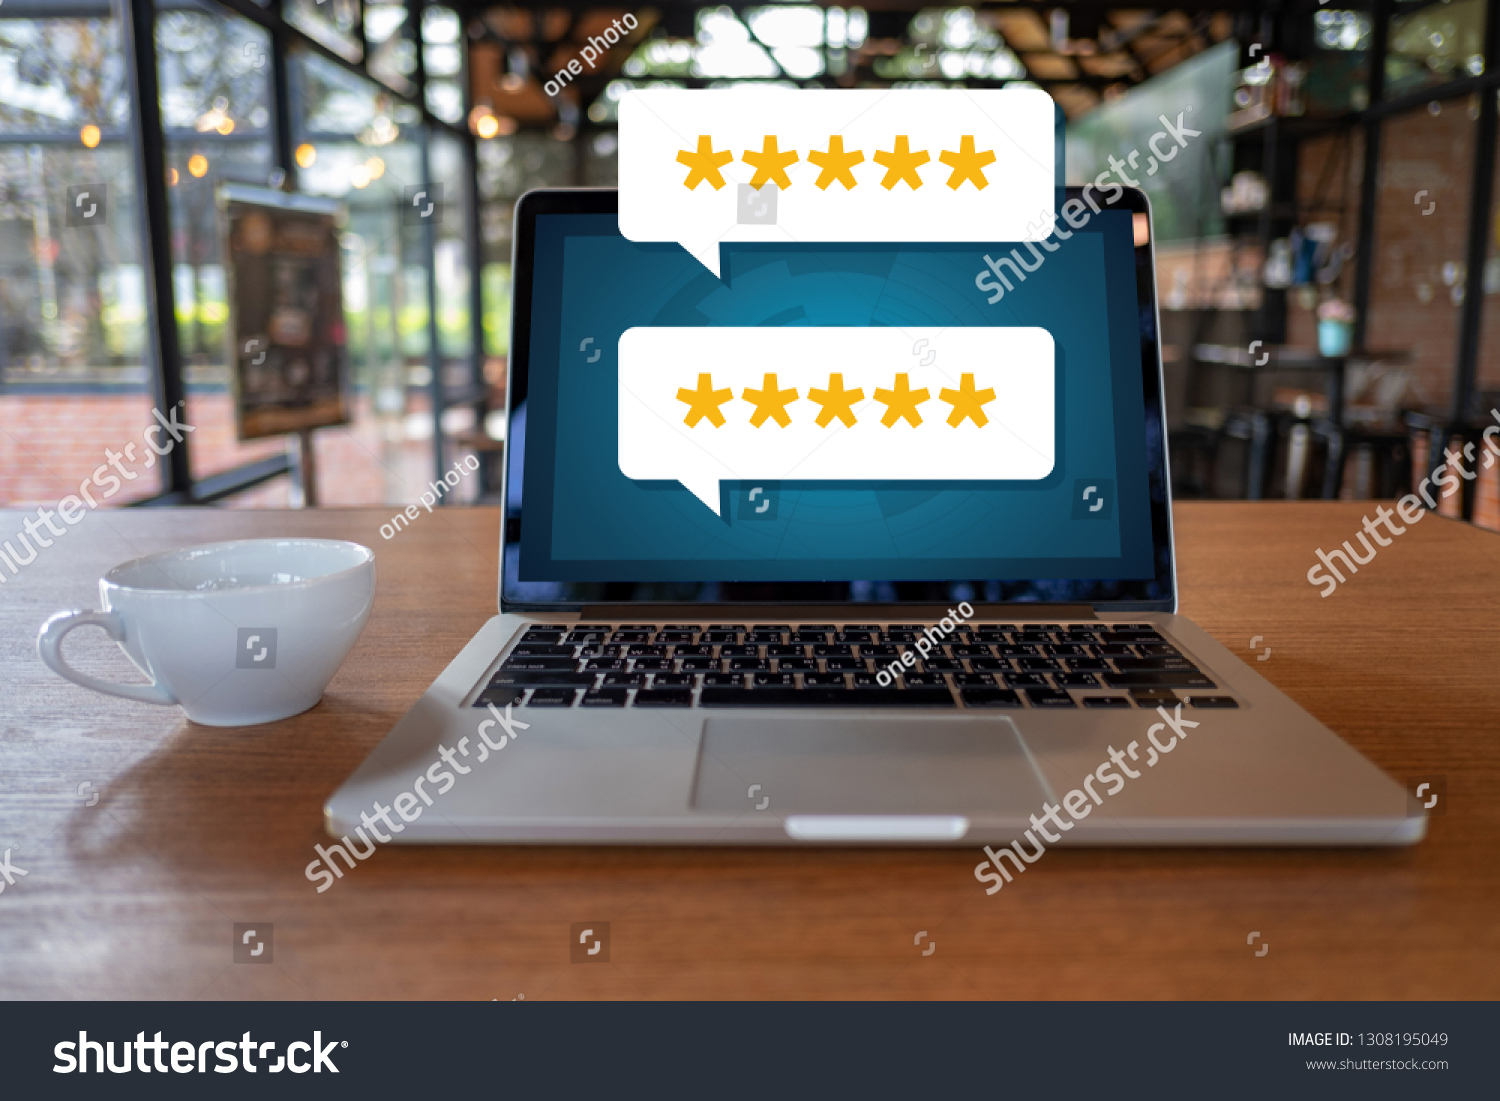 Online Reviews Evaluation time for review Inspection Assessment Auditing #1308195049